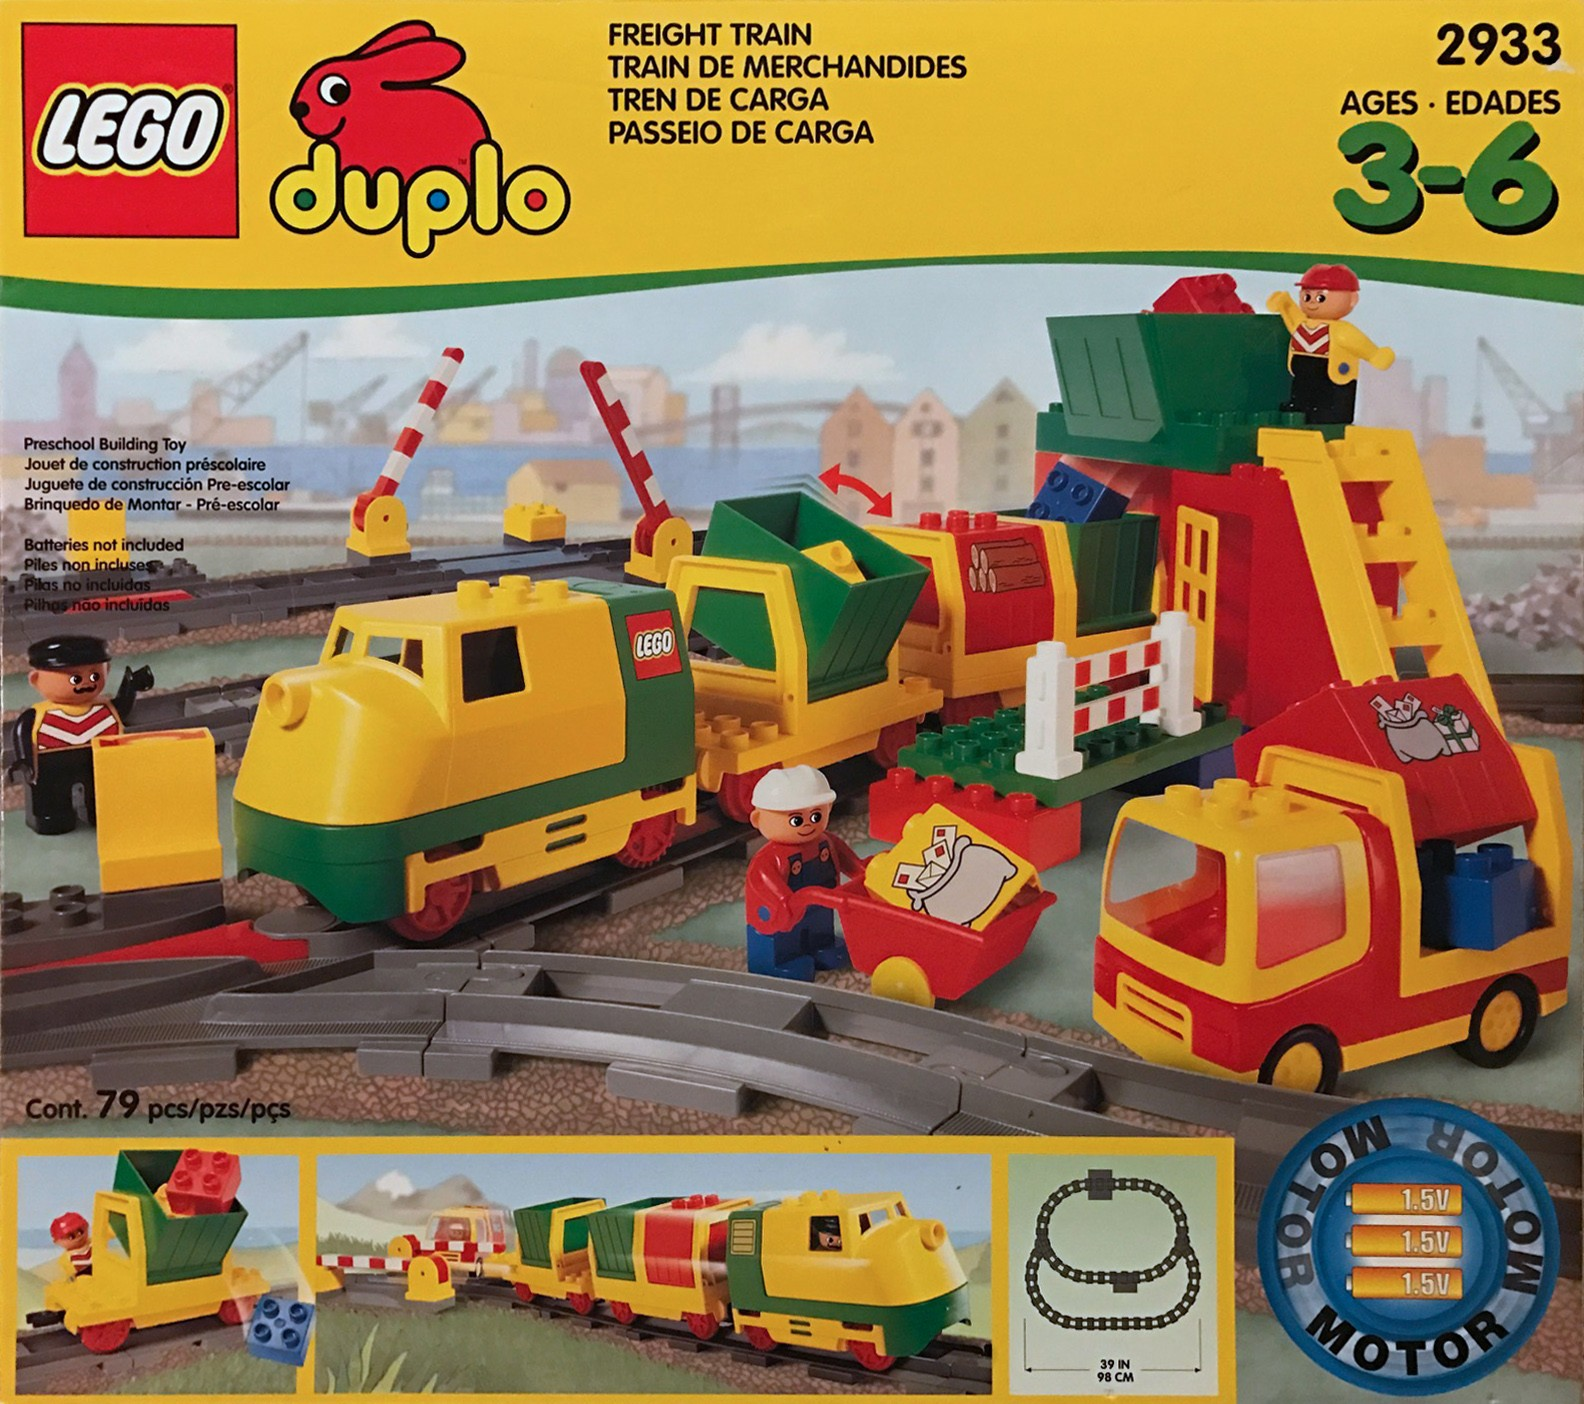 Duplo Tagged Freight Train Brickset Lego Set Guide And Database